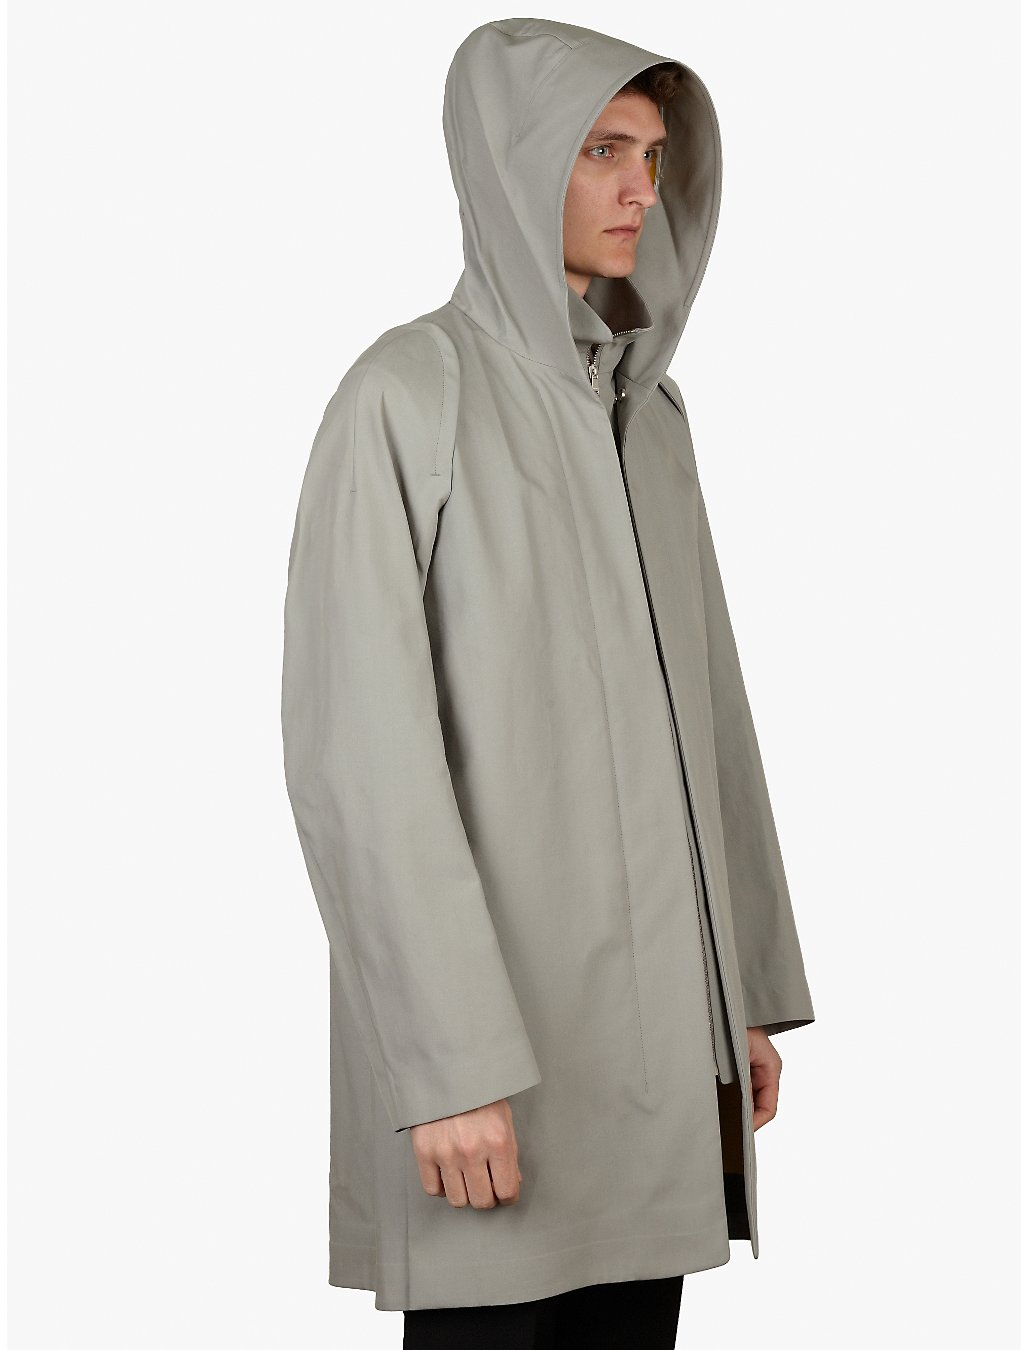 jil sander mens cile show jacket raincoat in gray for men. Black Bedroom Furniture Sets. Home Design Ideas